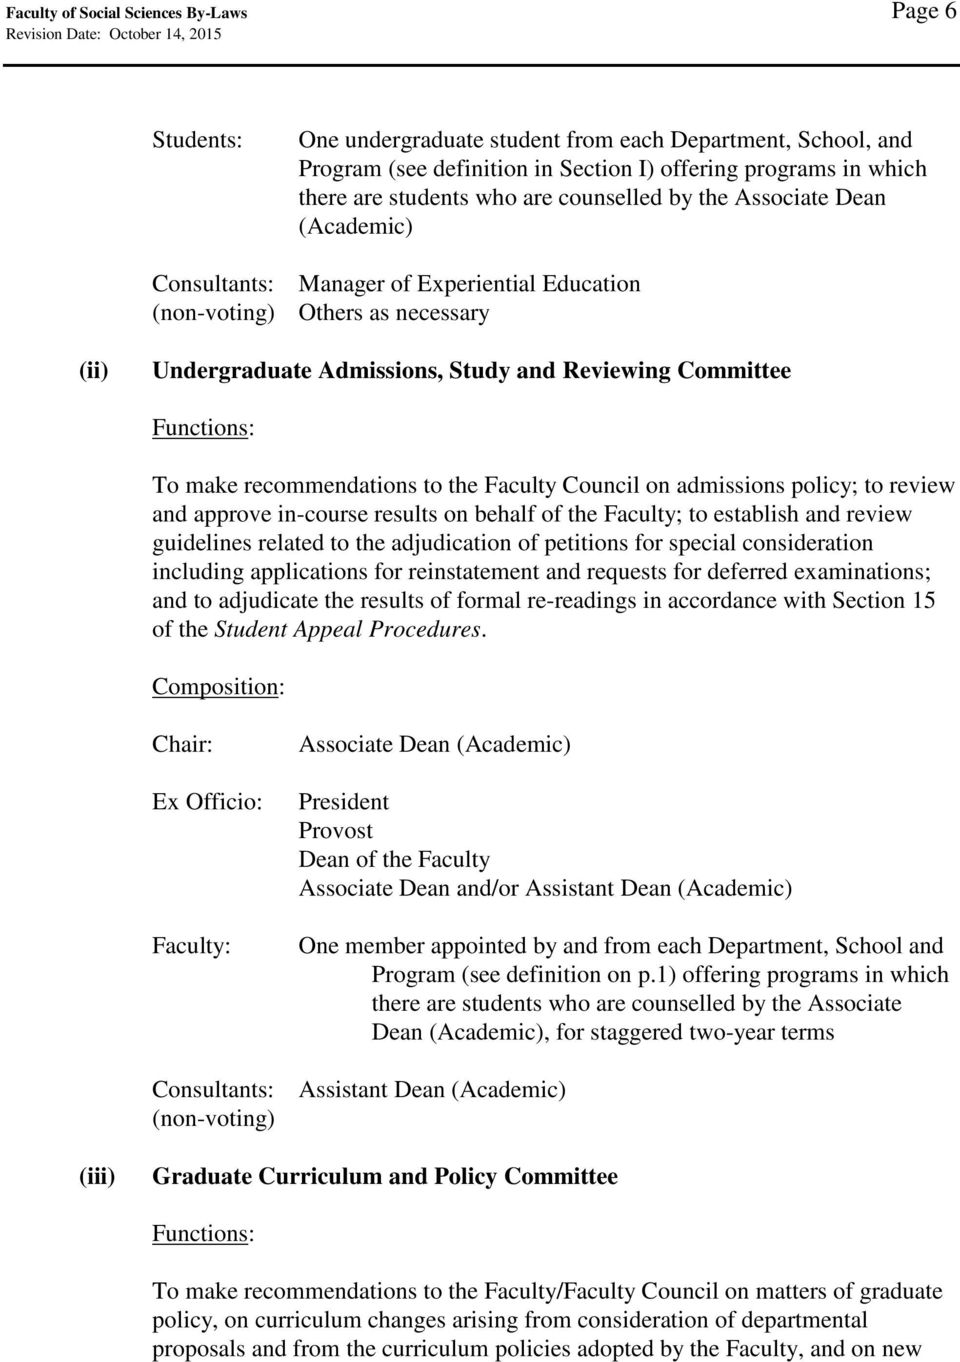 recommendations to the Faculty Council on admissions policy; to review and approve in-course results on behalf of the Faculty; to establish and review guidelines related to the adjudication of